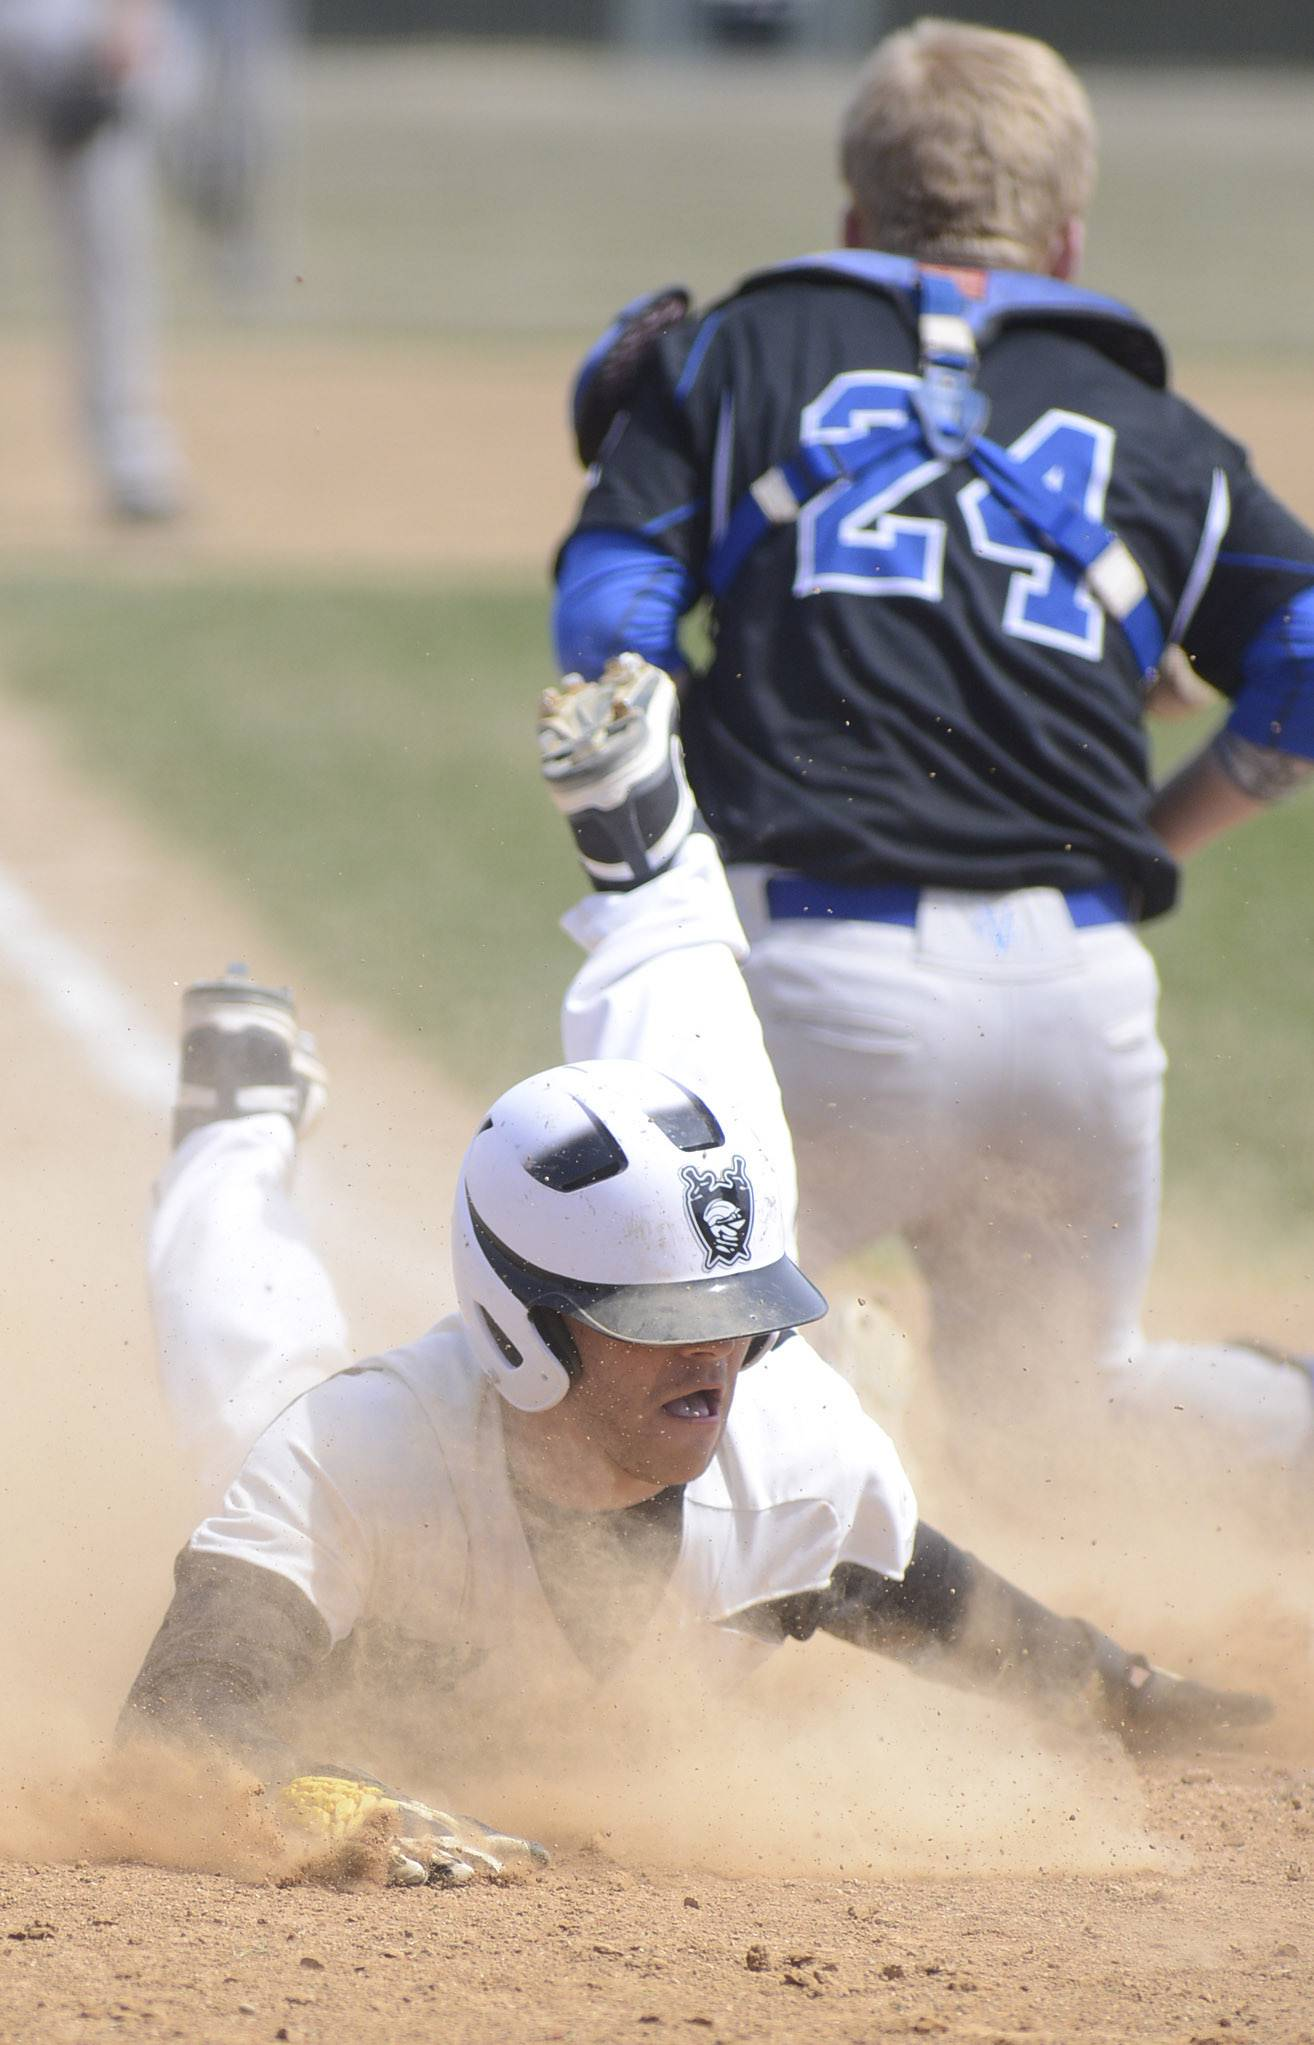 Kaneland's Joe Panico slides into home plate past Geneva catcher Nathan Montgomery to break a 6-6 tie in the ninth inning on Saturday in Maple Park.